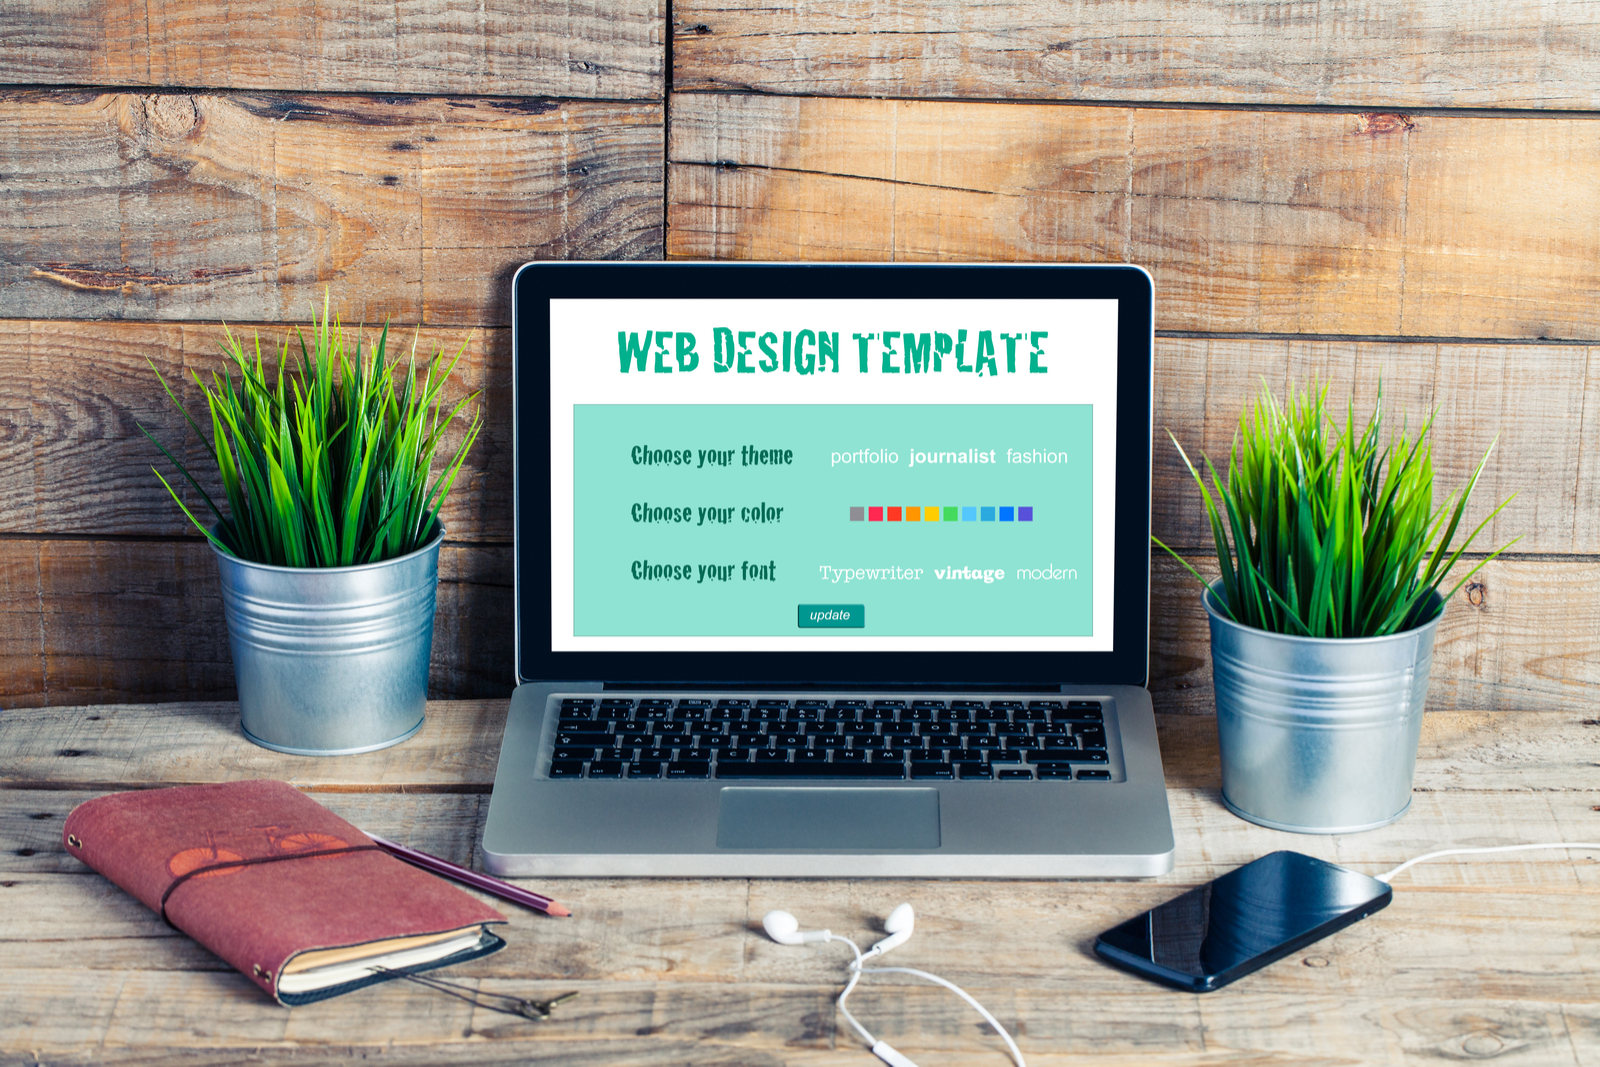 Computer and Mobile Phone | Templates 101: How To Find The Best WordPress Theme